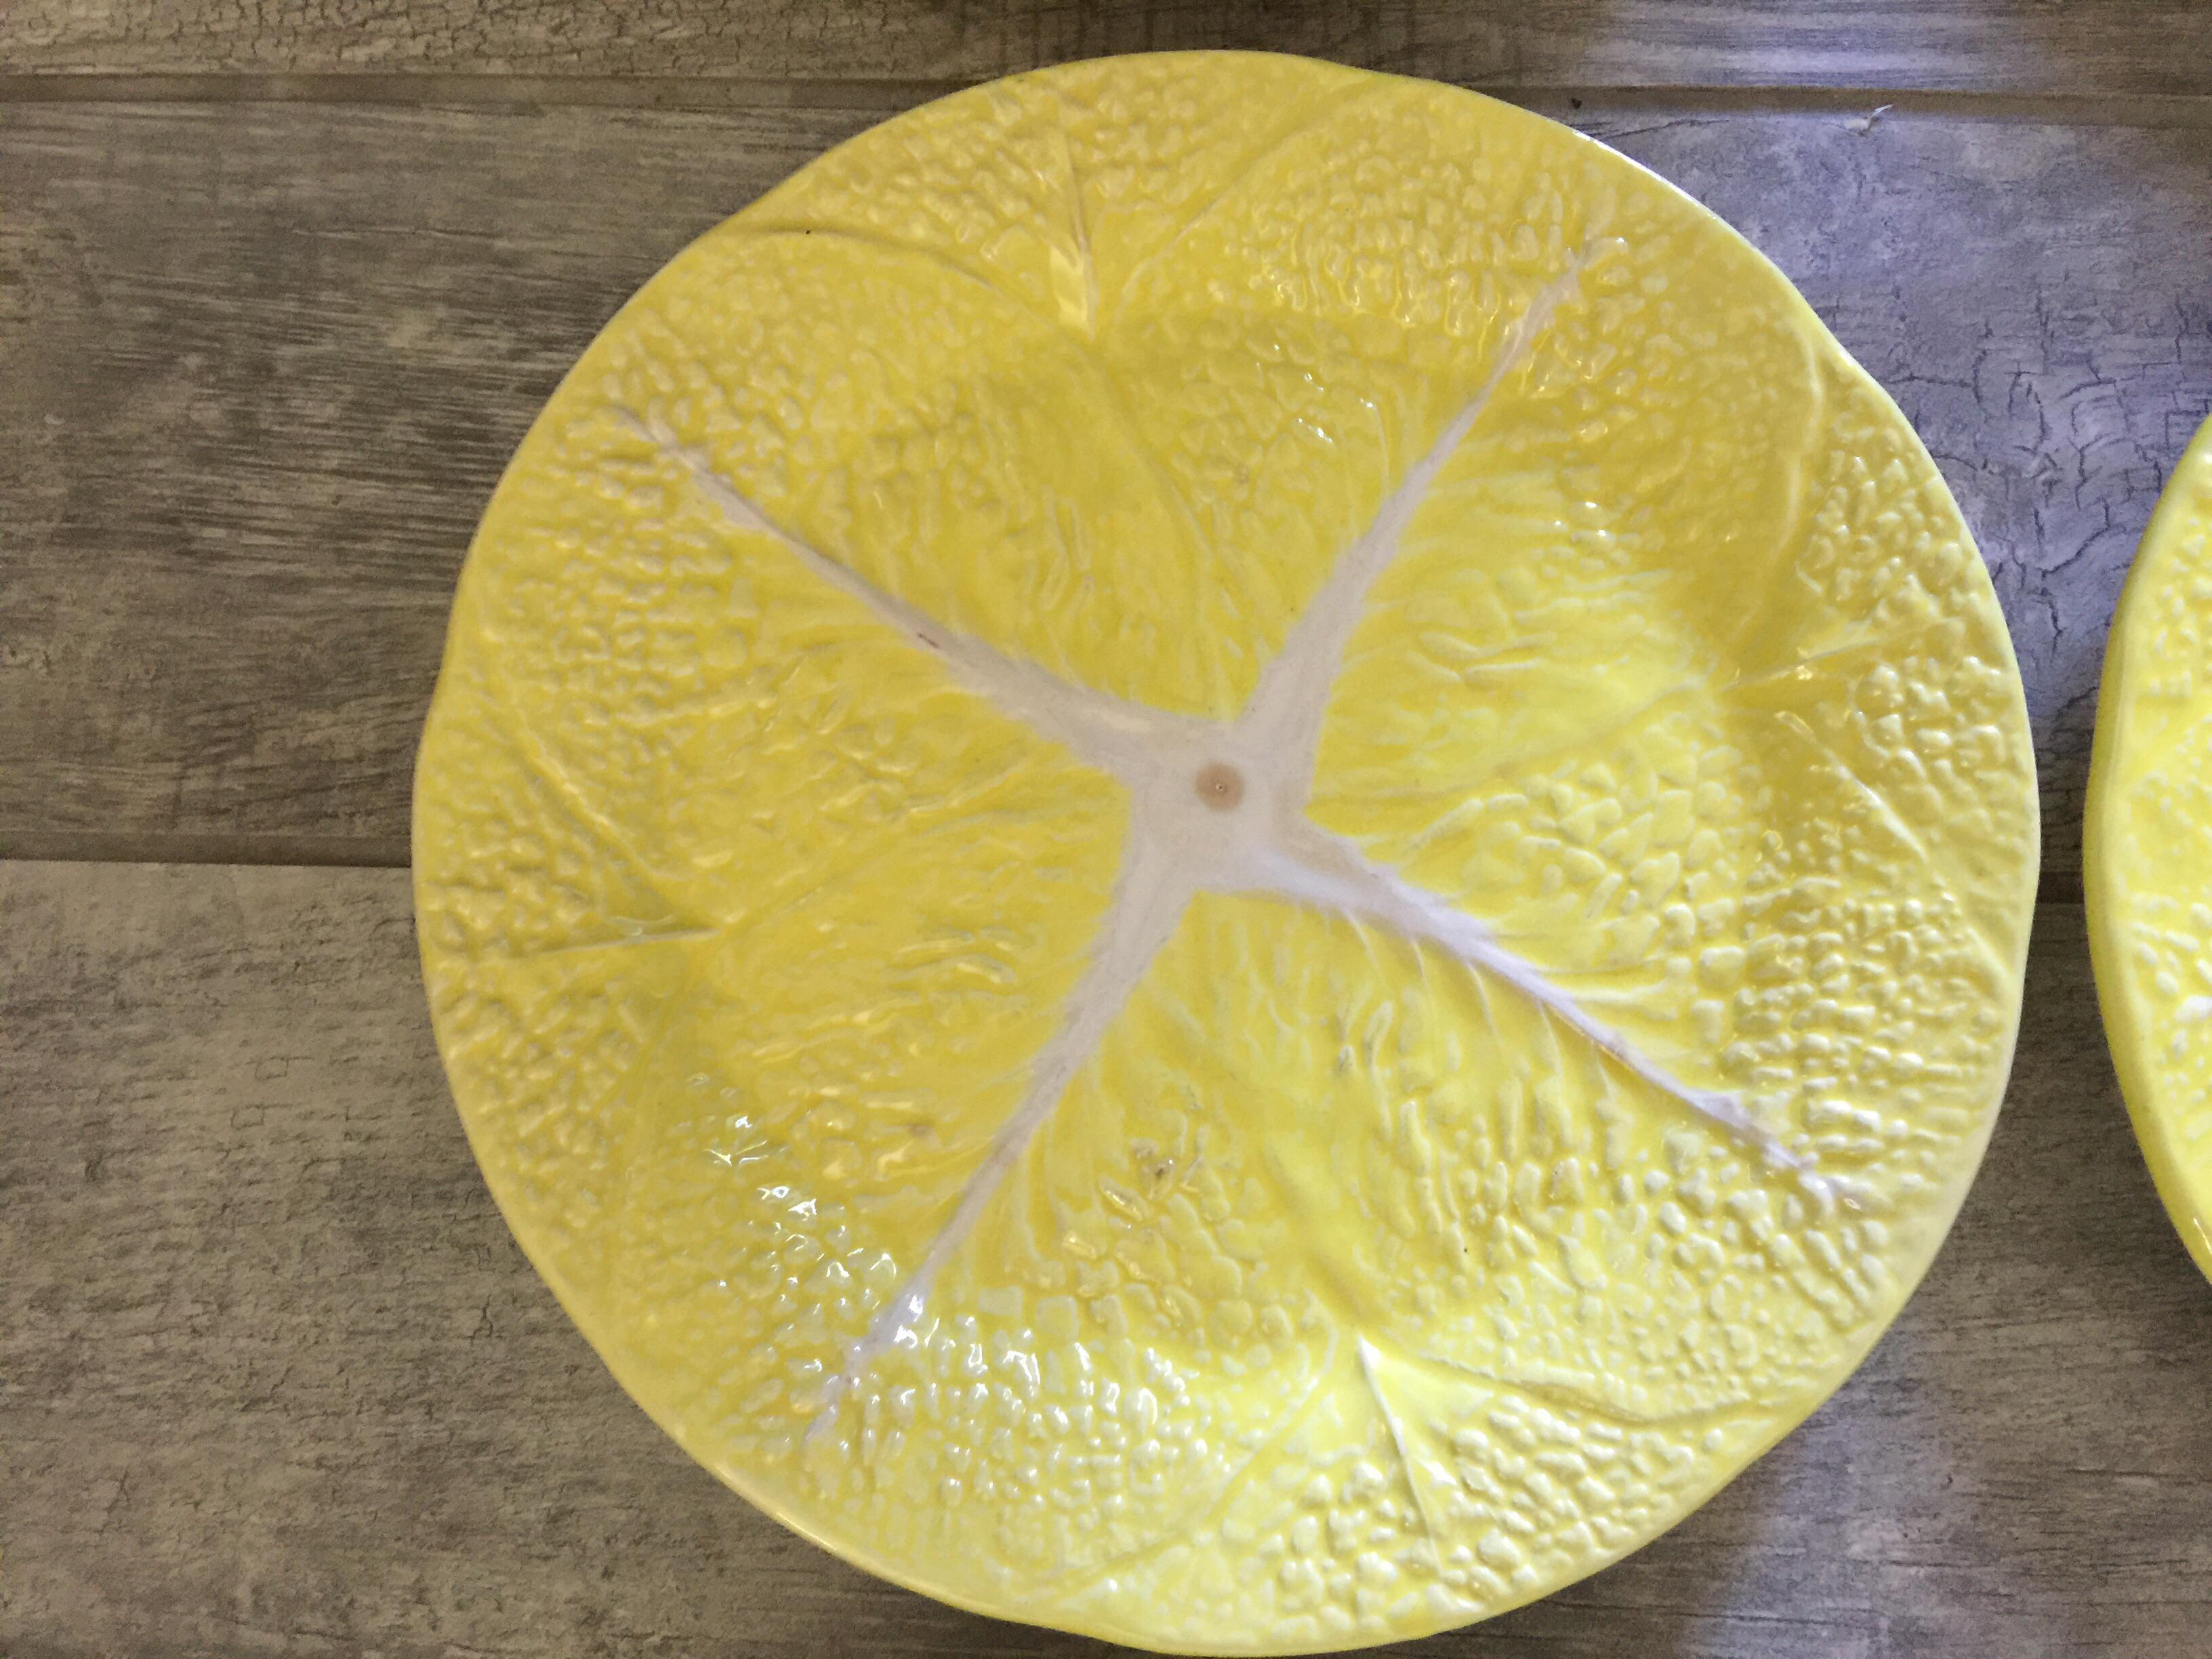 Secla Yellow Cabbage Large Dinner Plates - Set of 9 - Image 6 of 12  sc 1 st  Chairish & Secla Yellow Cabbage Large Dinner Plates - Set of 9 | Chairish